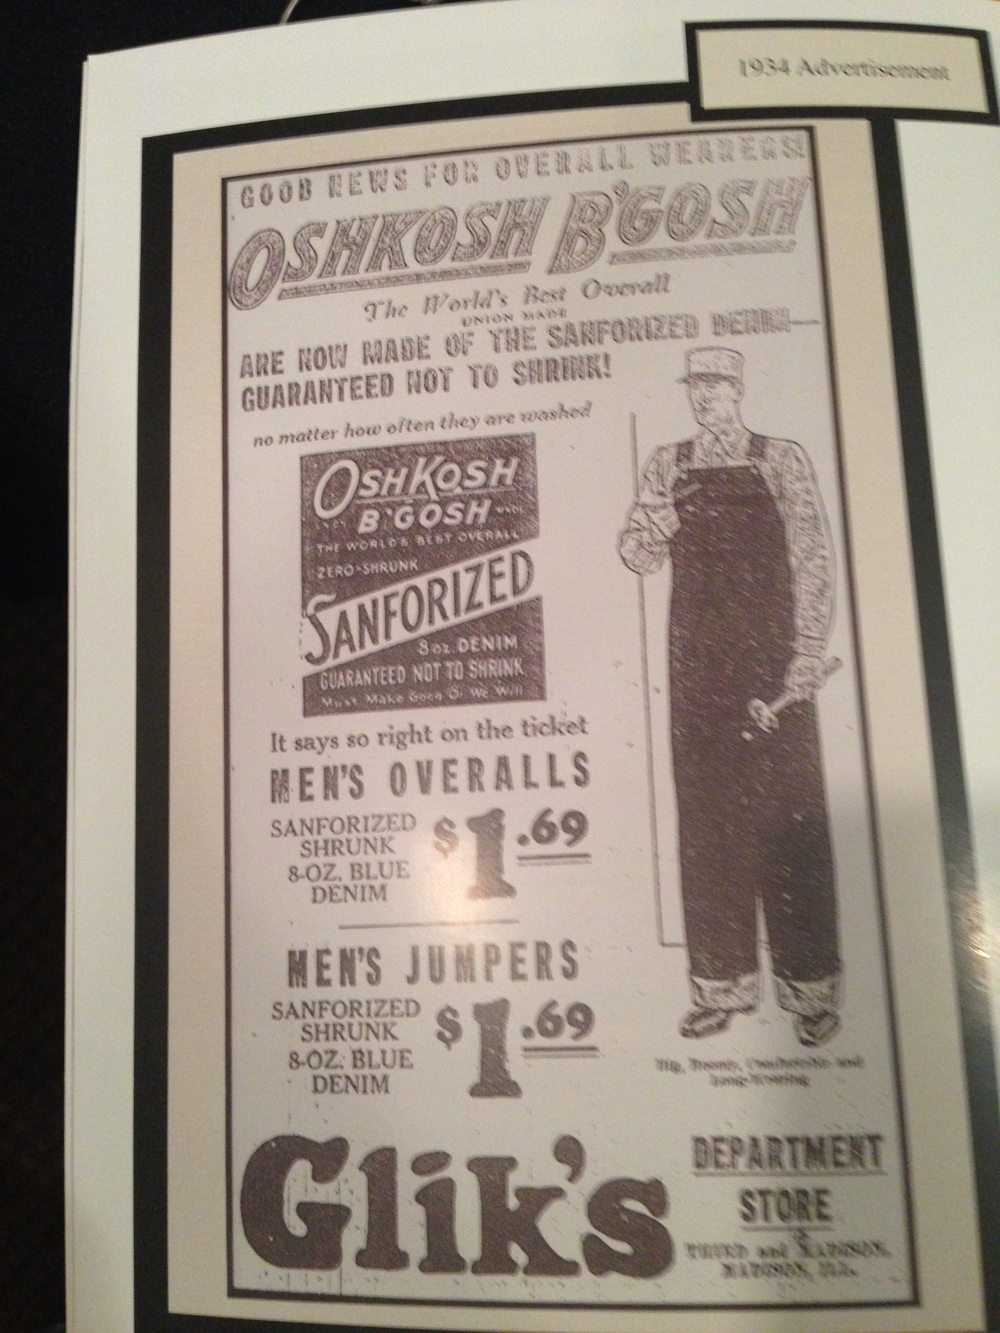 Here is one of their advertisements from 1934 that they had on display!